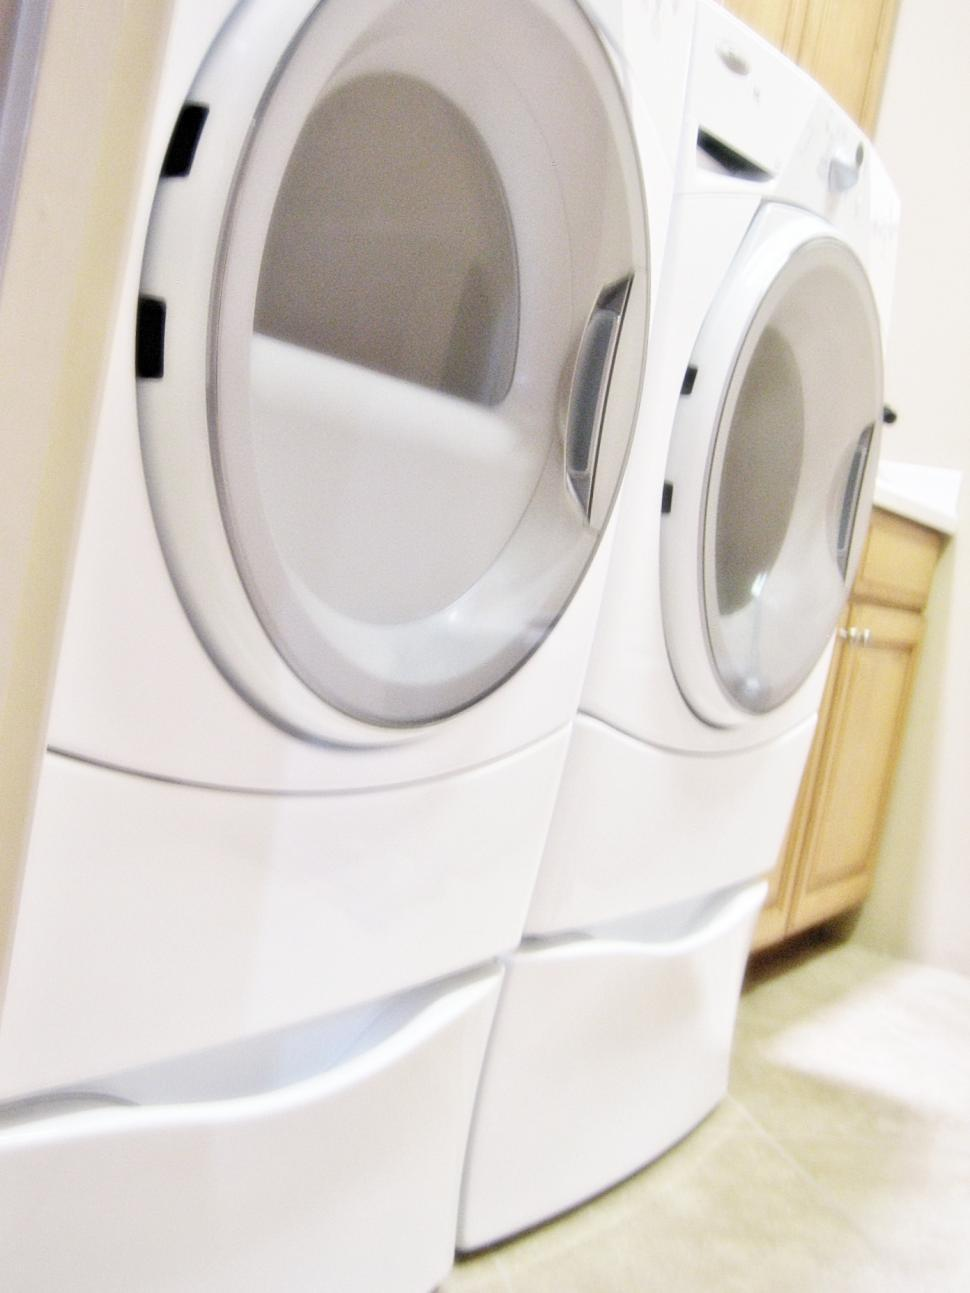 Download Free Stock HD Photo of Washer and Dryer Online